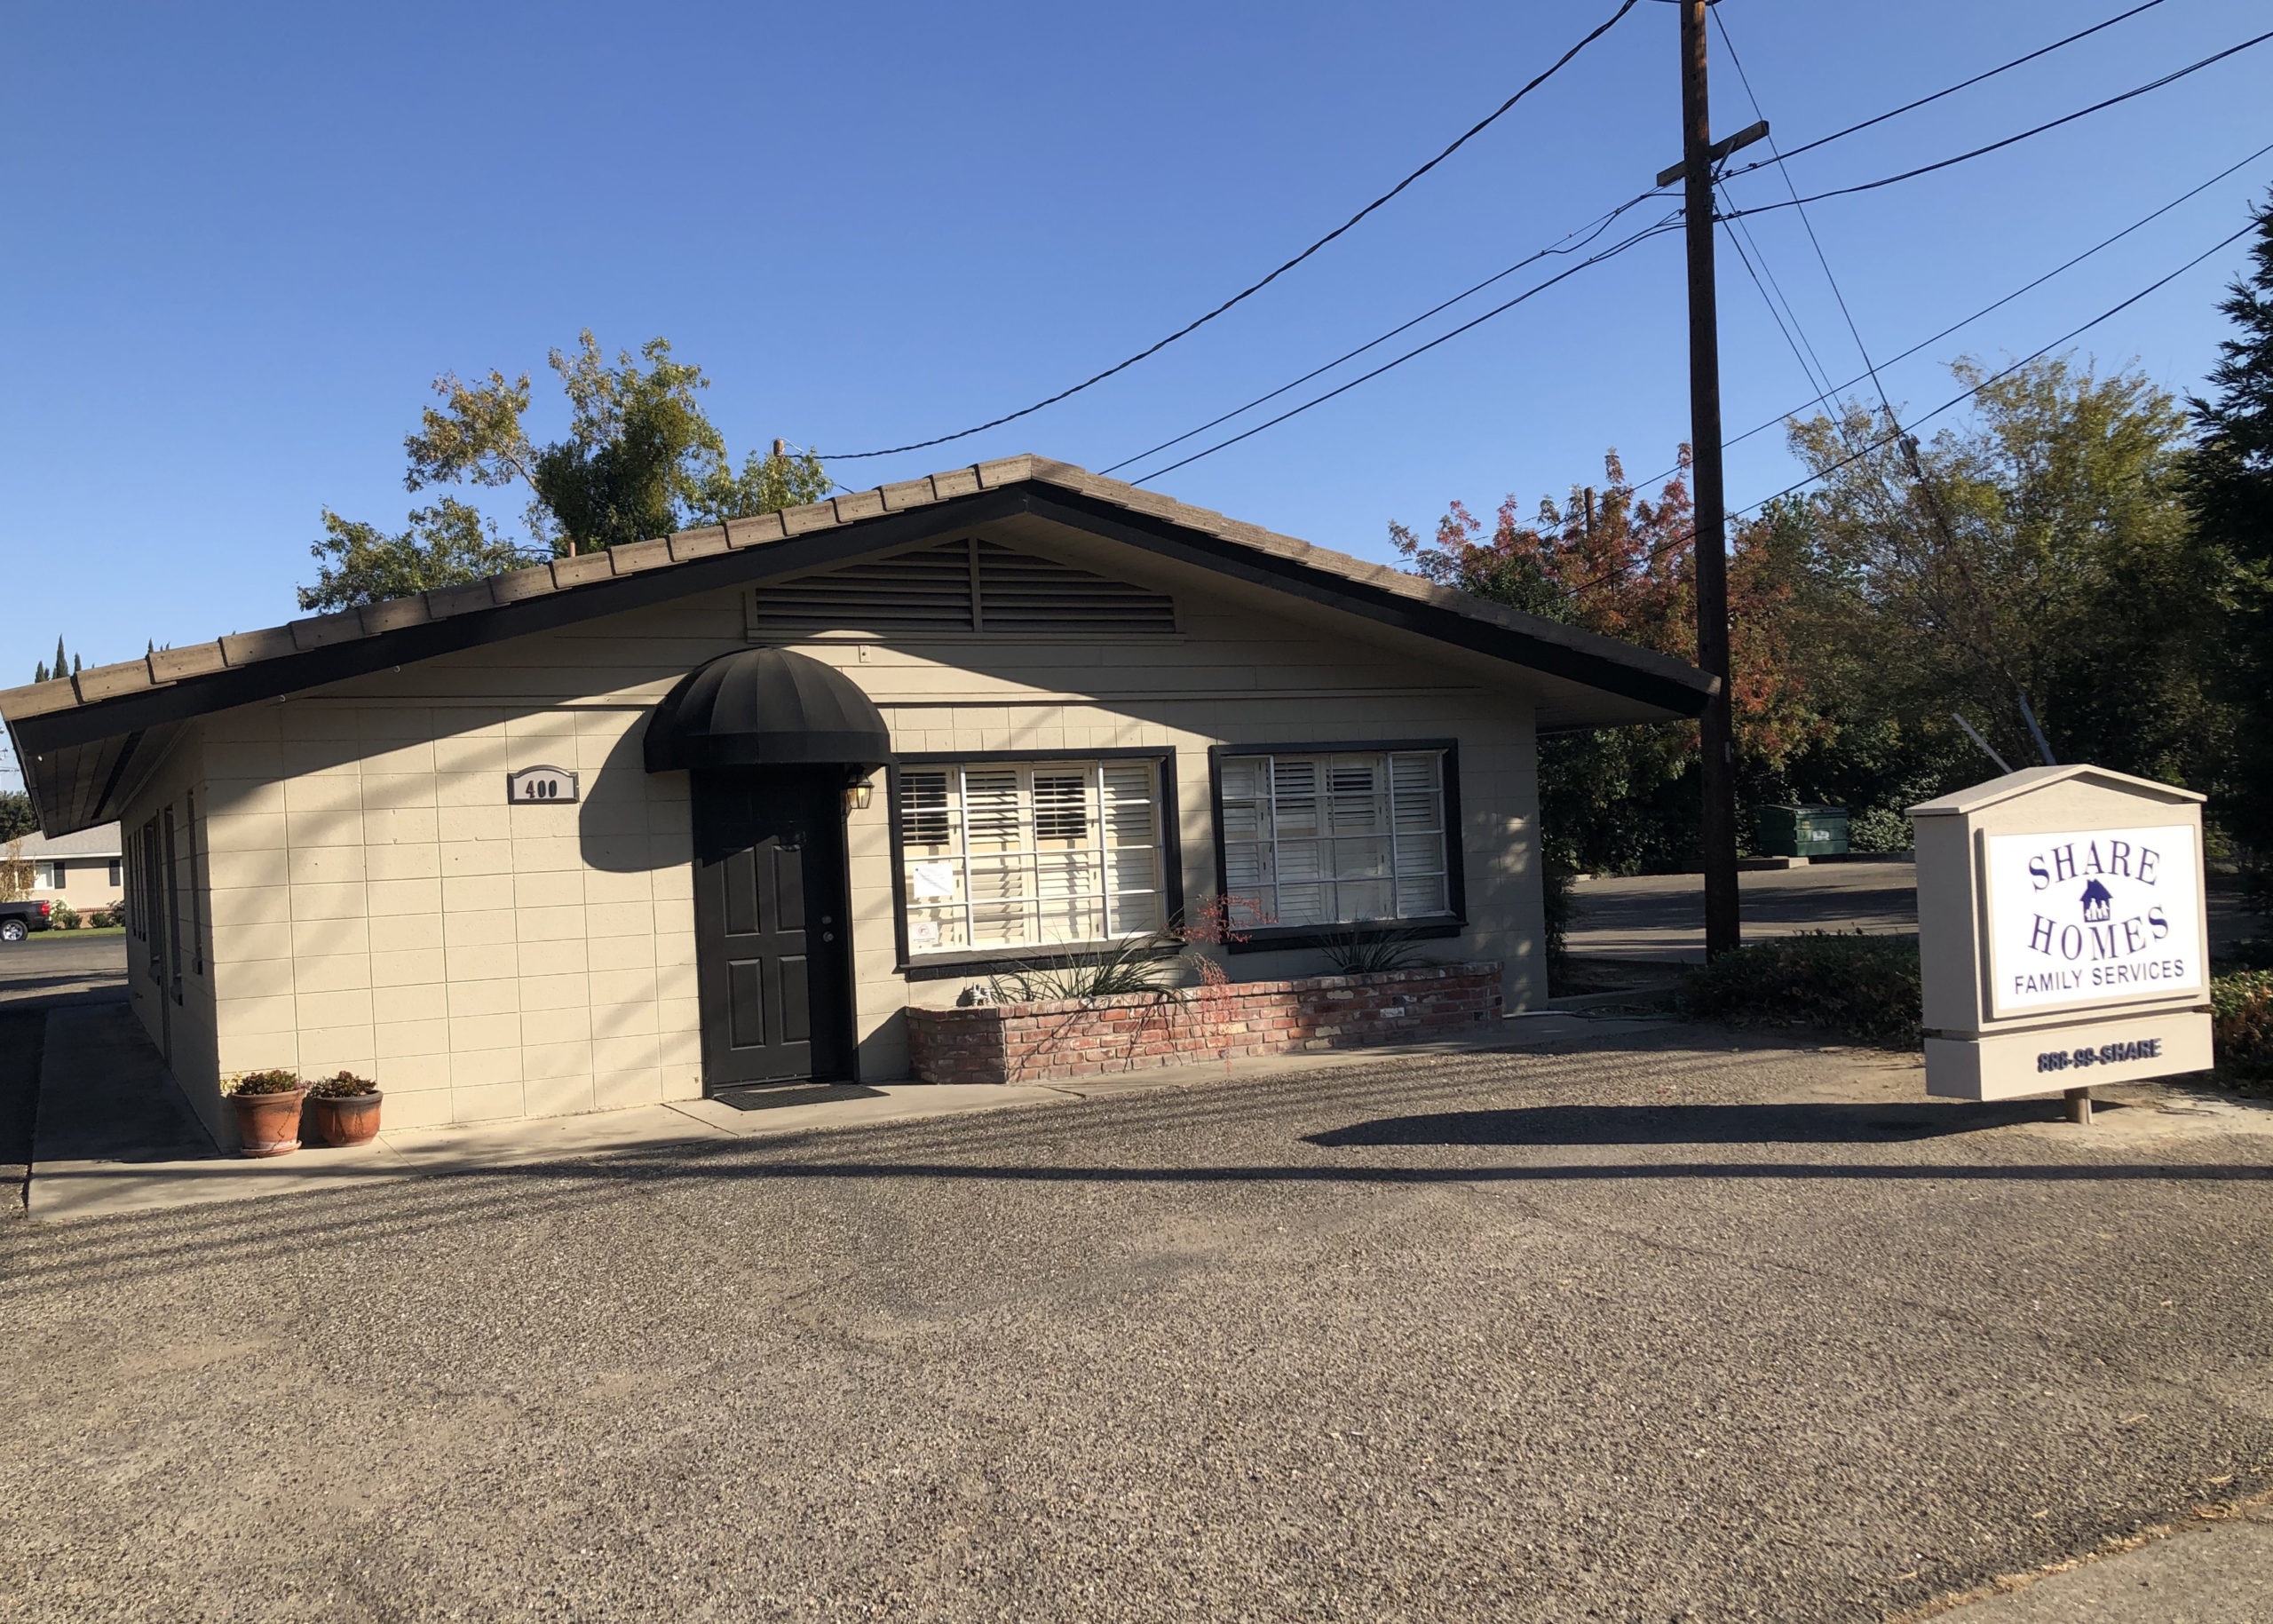 400 S. Fairmont Ave, Lodi, CA 95240  Phone: (209) 334-6376 Fax: (209) 334-4408